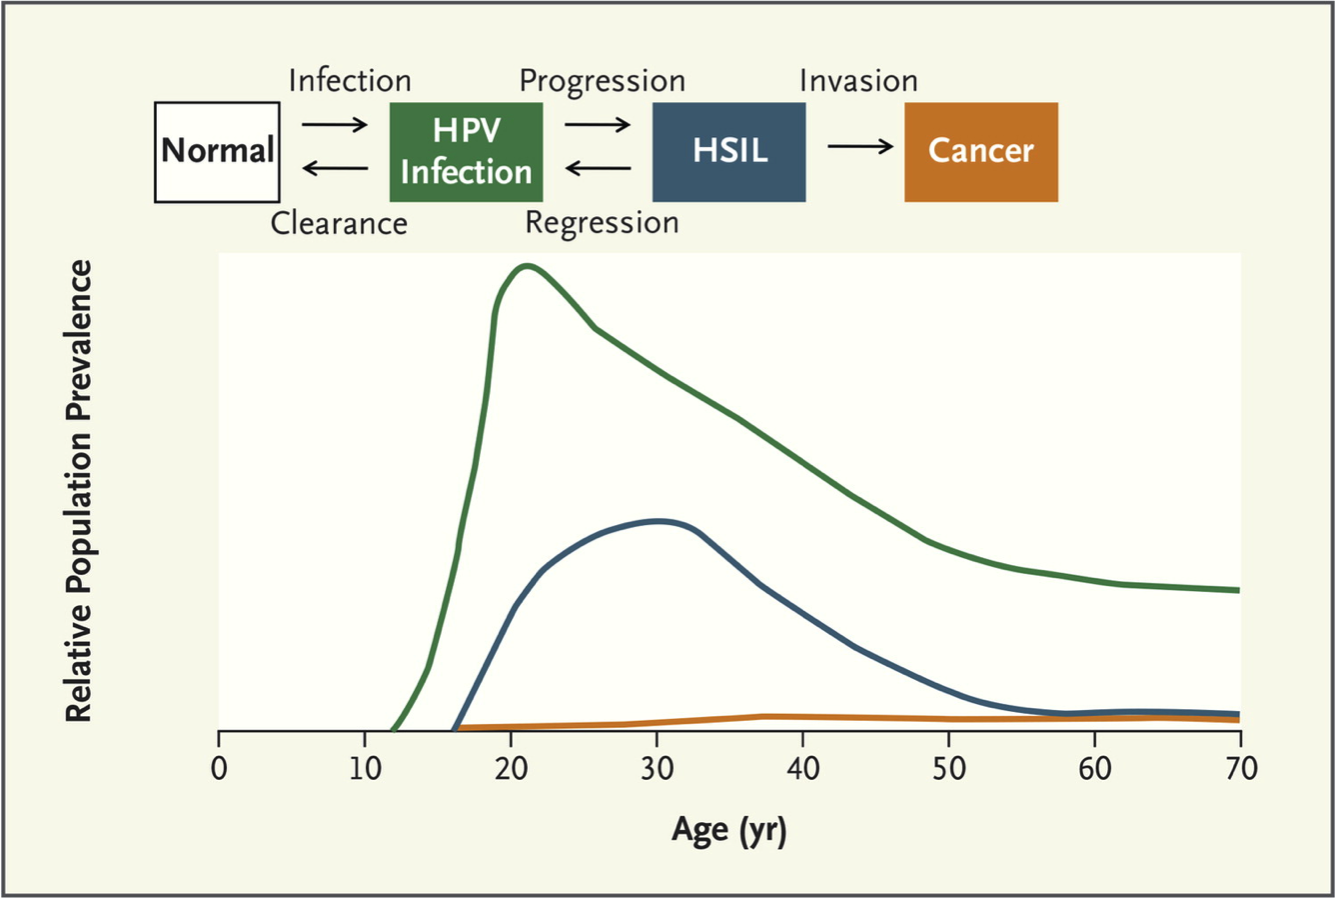 Natural history of HPV infection and cancer as shown at top.  The bottom graph shows the correlation of the stages during the natural history with age. As shown in the graph, the age of peak high-grade intraepithelial lesion (HSIL) or precancer occurs 5 to 10 years after HPV infection.<div>Source: Schiffman M, Solomon D. Clinical practice. Cervical-cancer screening with human papillomavirus and cytologic cotesting. N Engl J Med. 2013;369:2324-31.